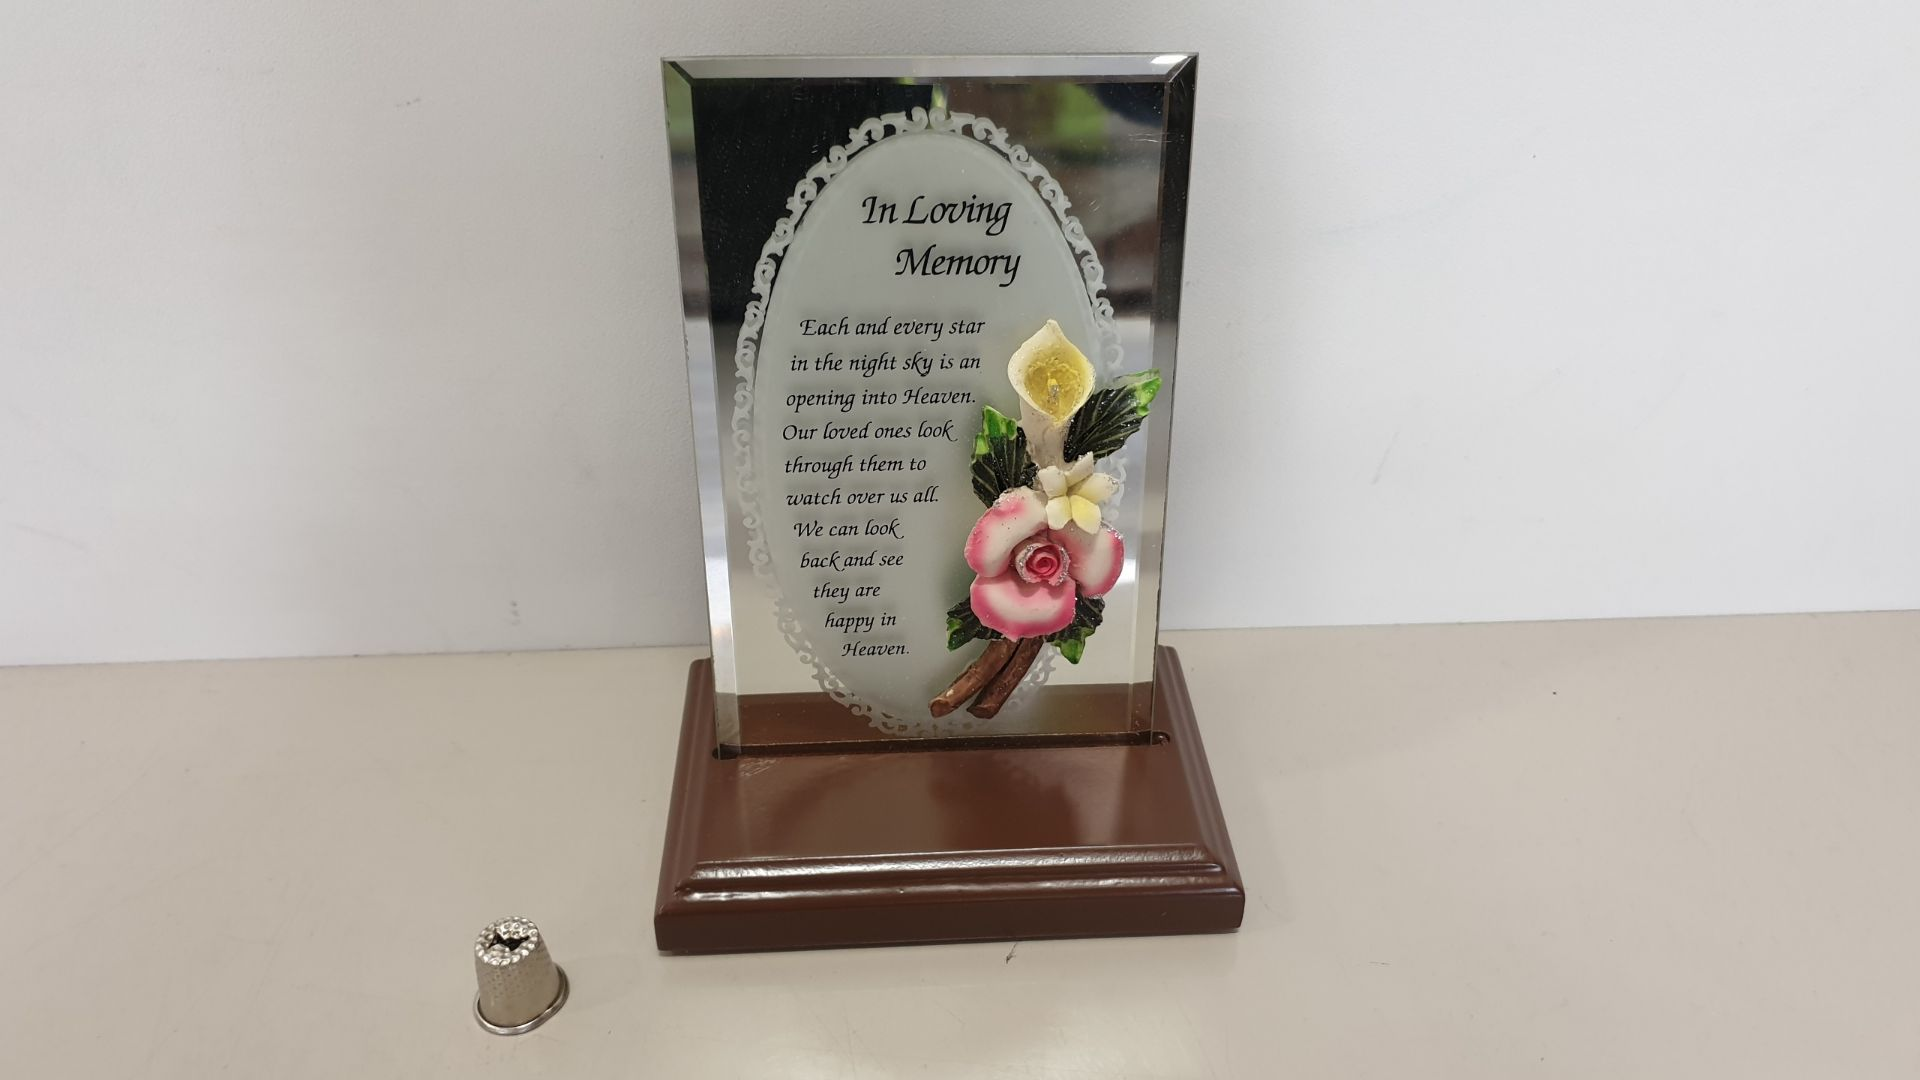 Lot 610 - 108 X BRAND NEW MAYFLOWER COLLECTABLES 'IN LOVING MEMORY' MIRRORED MESSAGE - 4 BOXES AND 12 LOOSE